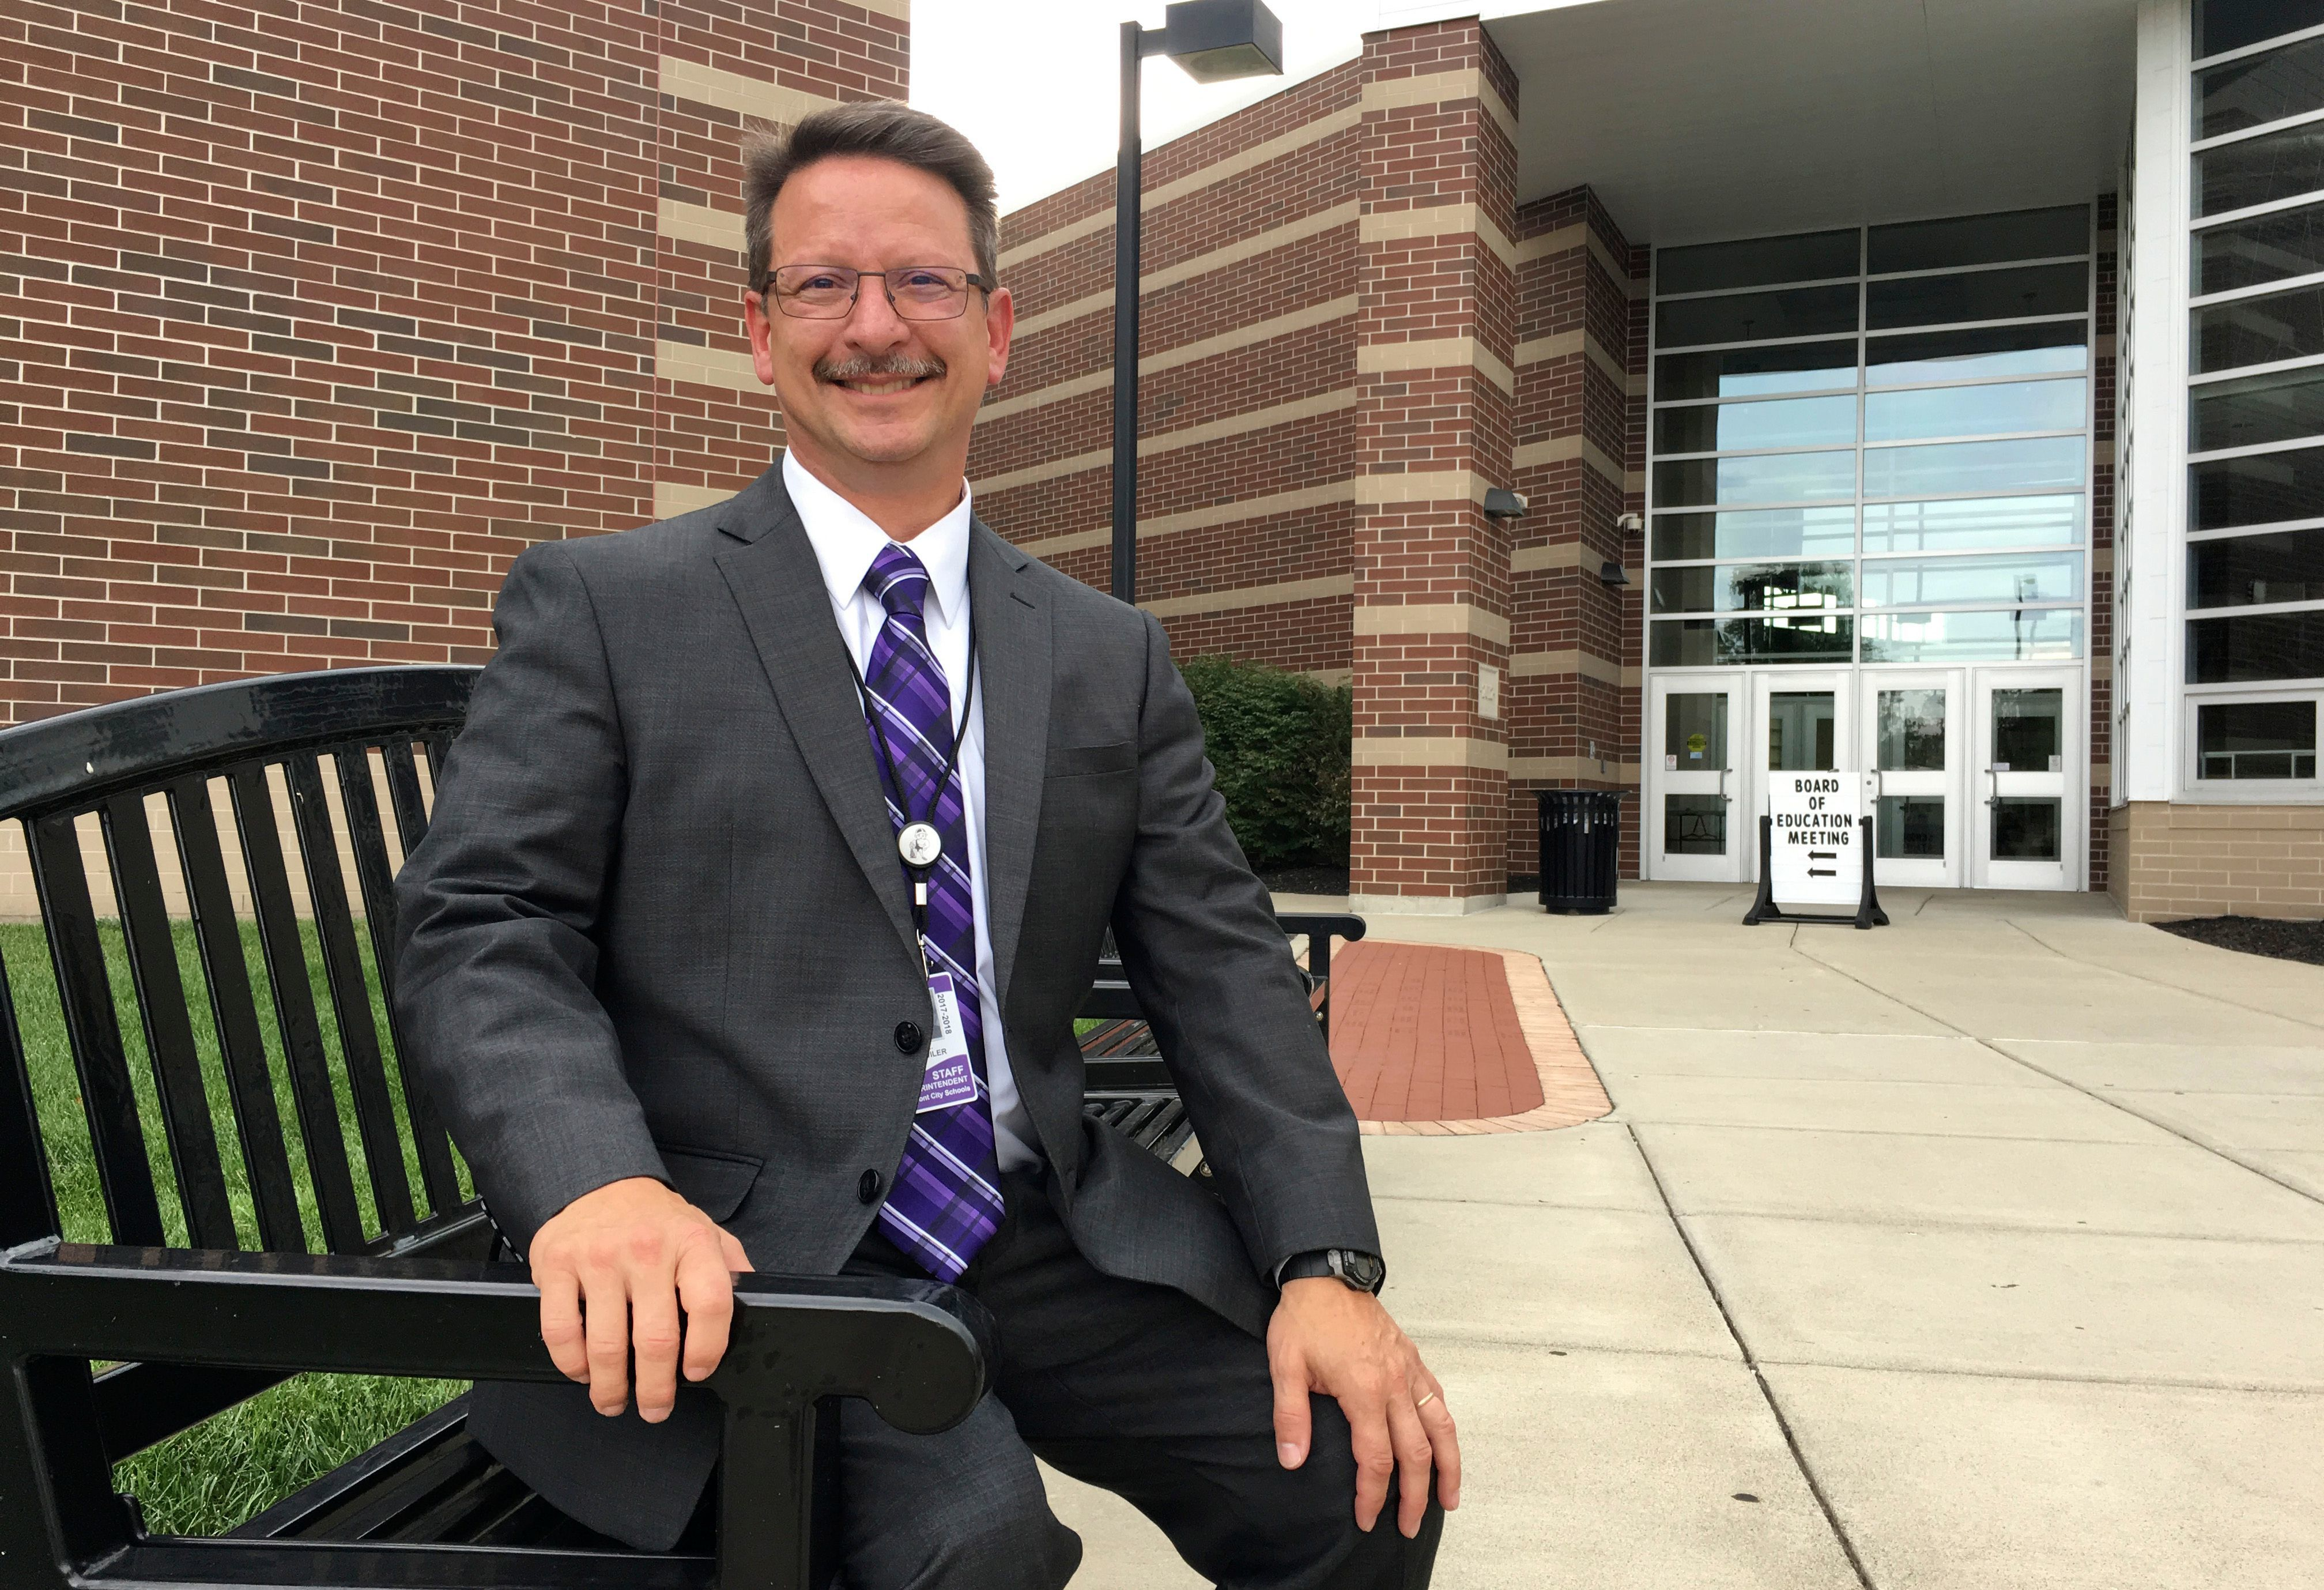 Jon Detwiler, Fremont City Schools superintendent, said Ballville Township firefighters were quick on the scene Tuesday morning and contained a small electrical fire in Lutz Elementary School's kitchen. There were no evacuations or injuries as a result of the fire, which occurred around 11:15 a.m.